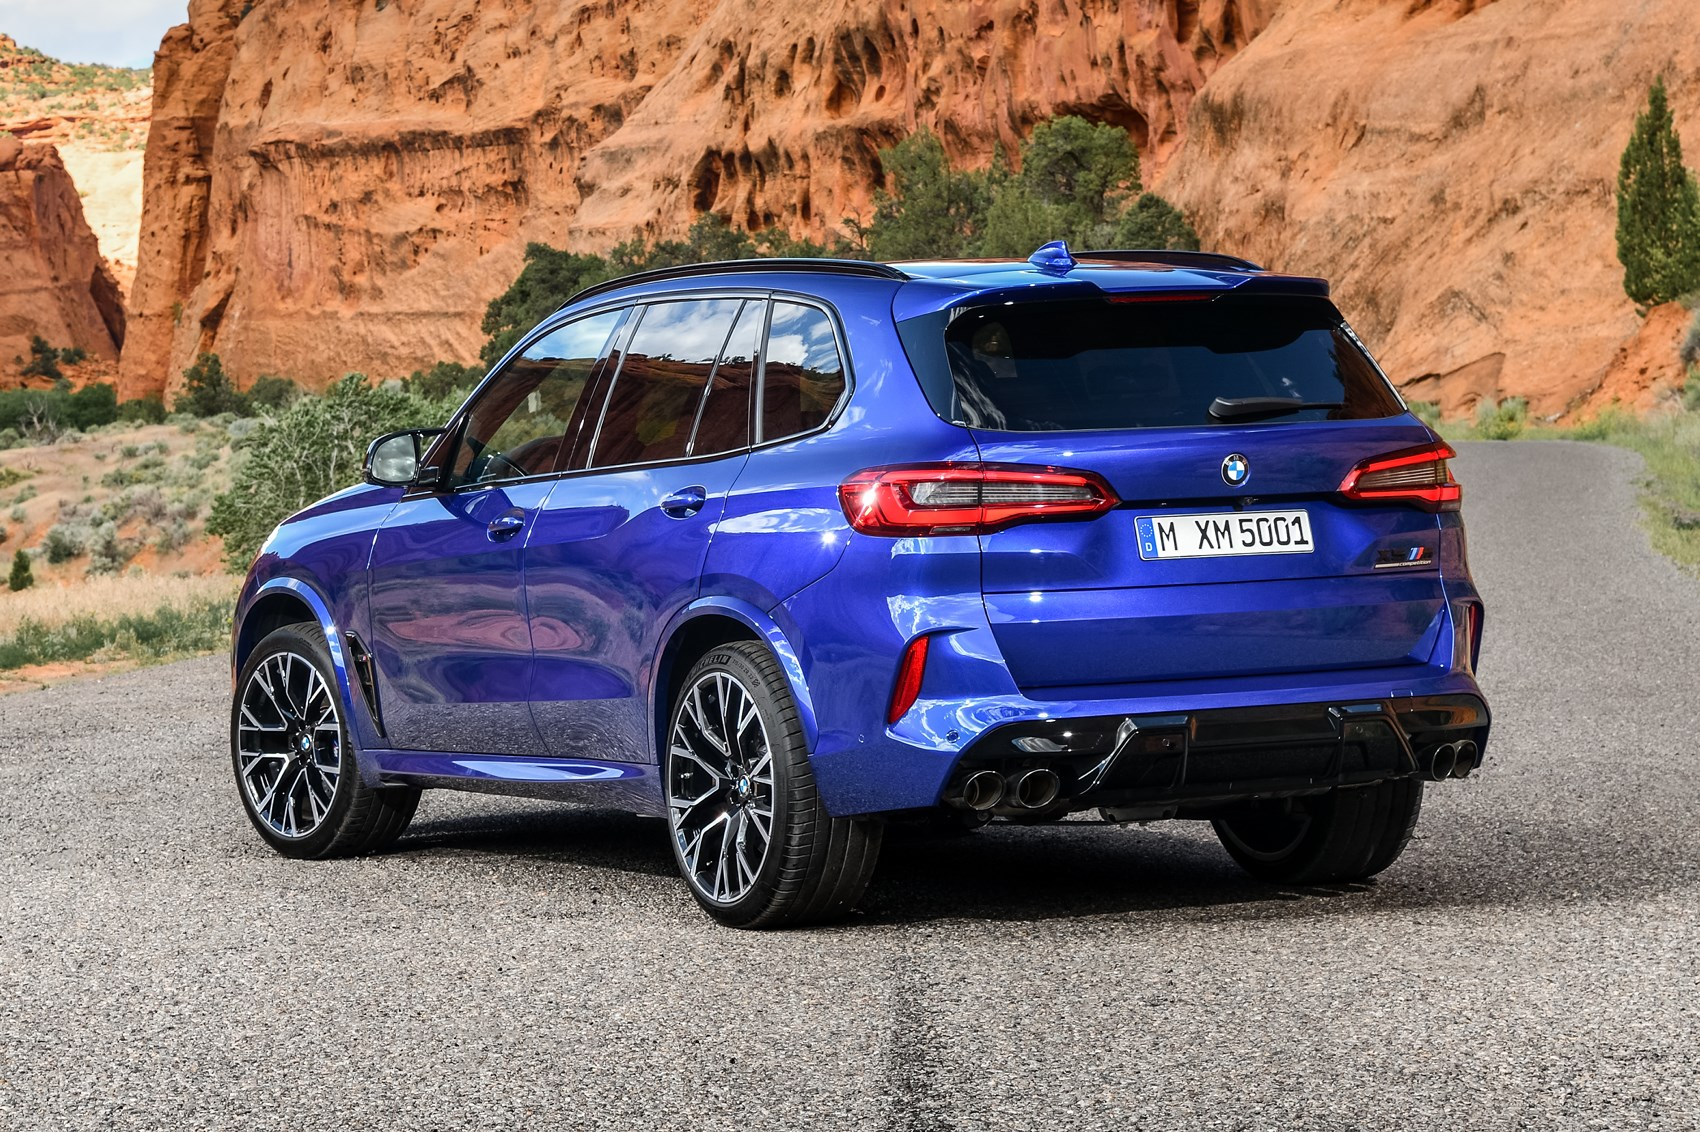 New 616bhp BMW X5 M Competition joins SUV range | CAR Magazine